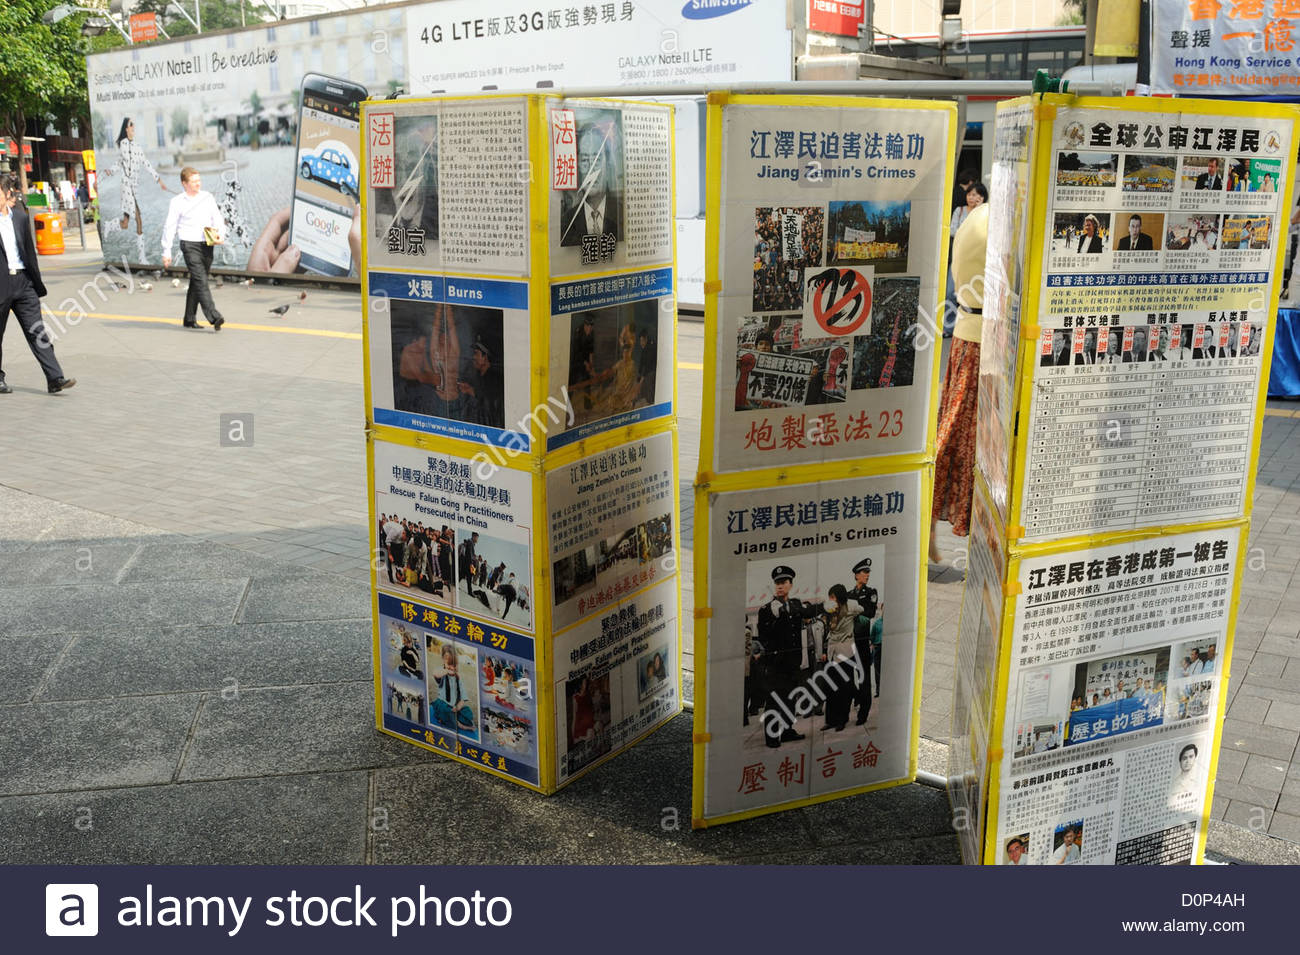 Hong Kong S.A.R Kowloon - Anti Falun Gong posters near the Star Ferry terminal - Stock Image